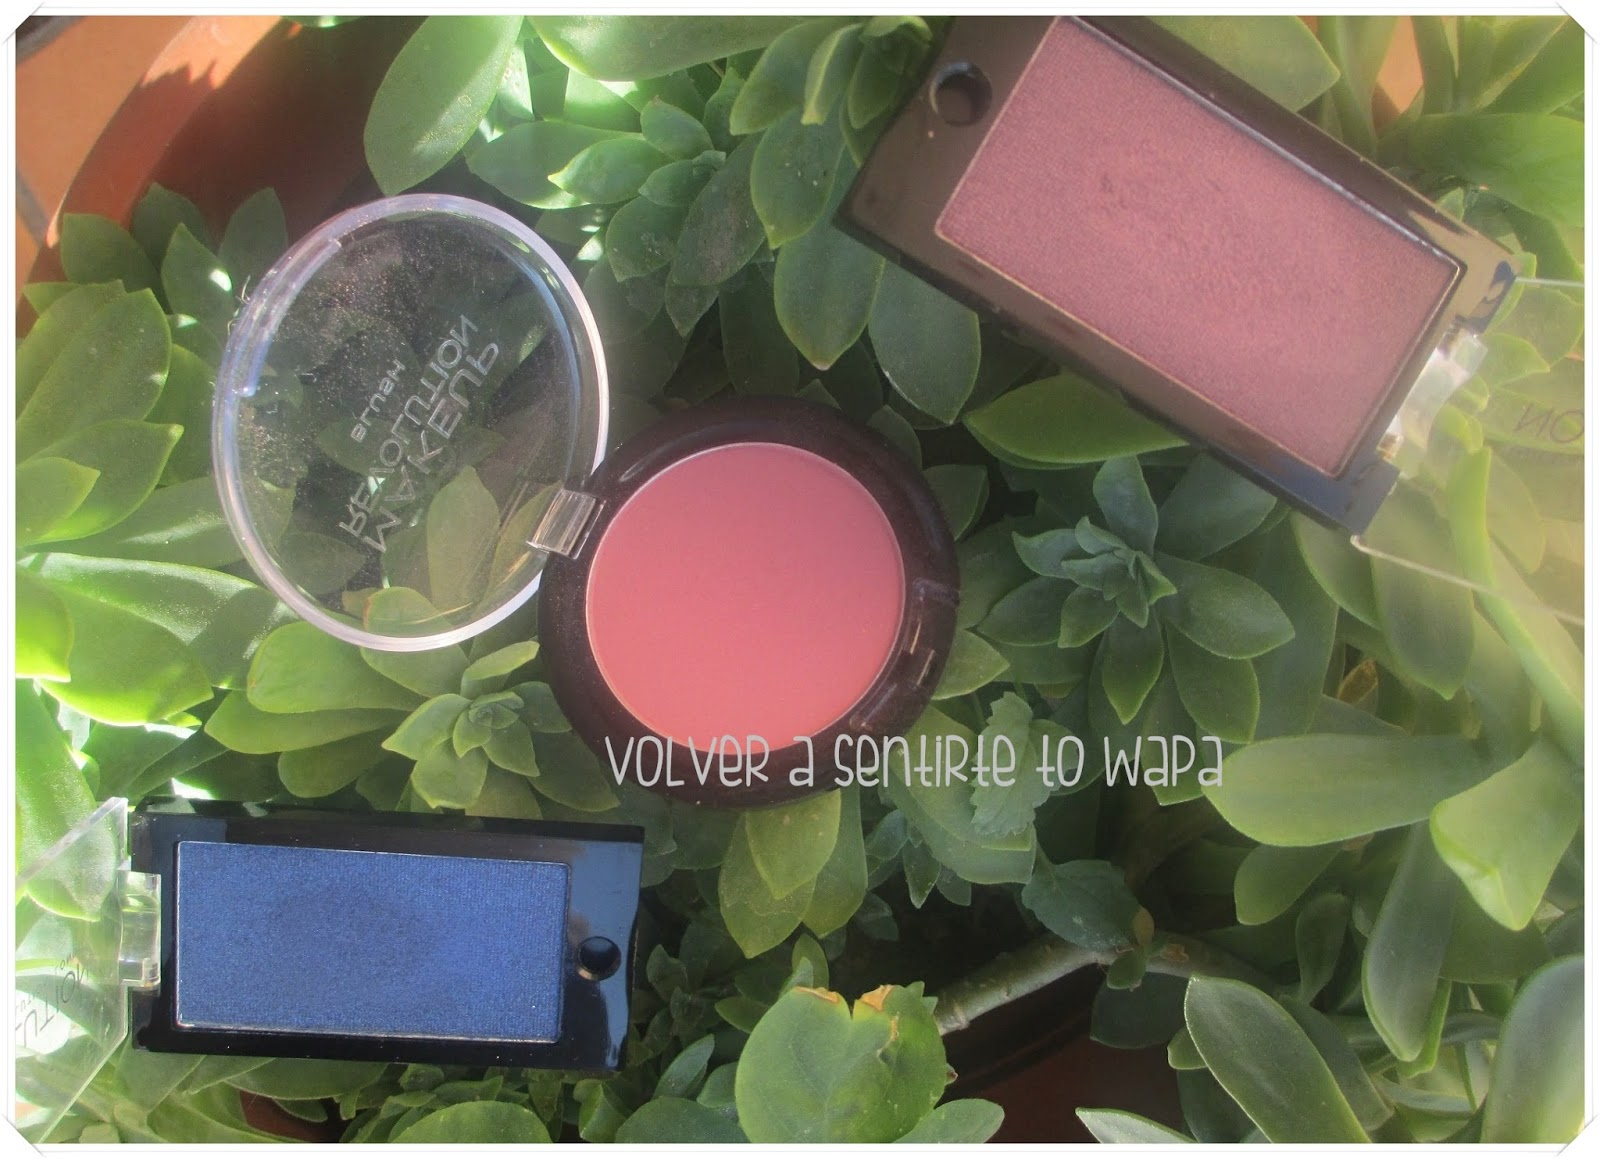 Regalitos de Cumpleaños de Bea {Miss Potingues} - Make Up Revolution